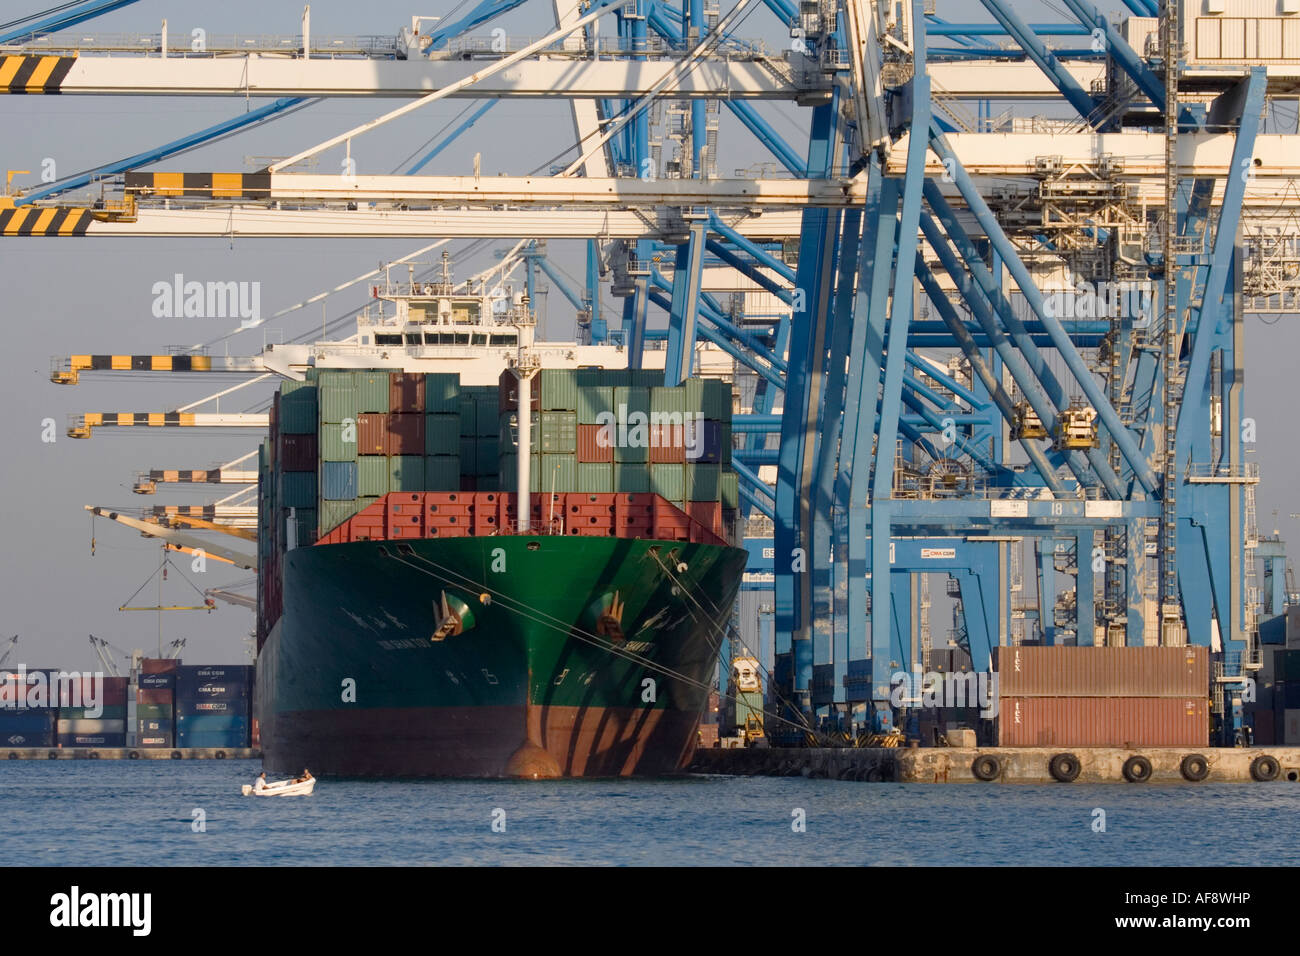 Container ship in port  Shipping, sea transport logistics